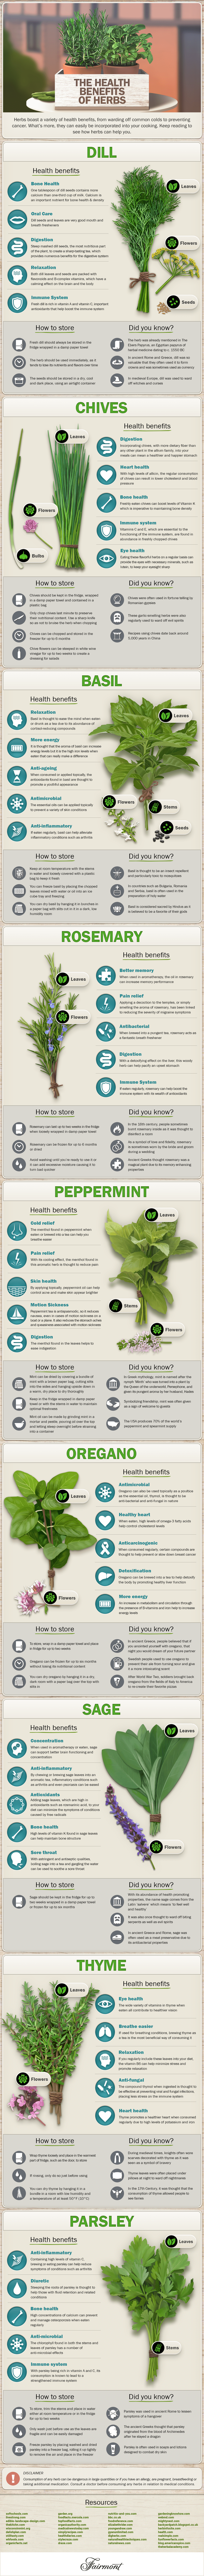 Discover the numerous health benefits of herbs through our detailed illustrations, including storage advice and little known facts.